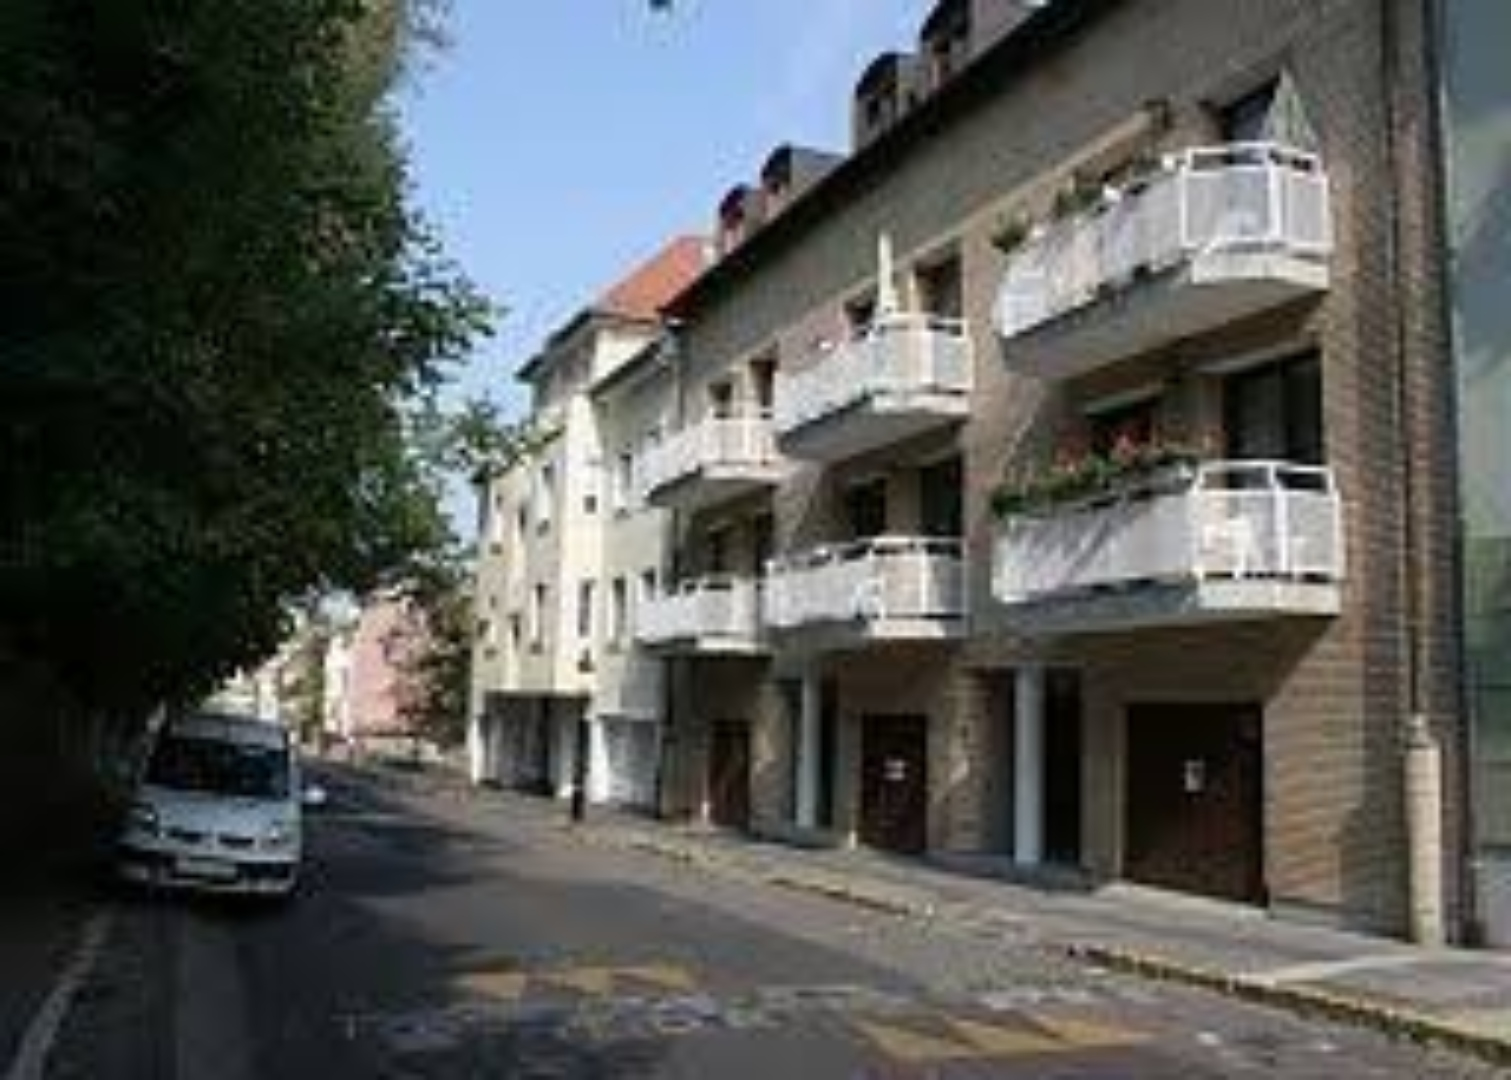 A narrow city street with cars parked on the side of a building at Budavar Pension B&B.